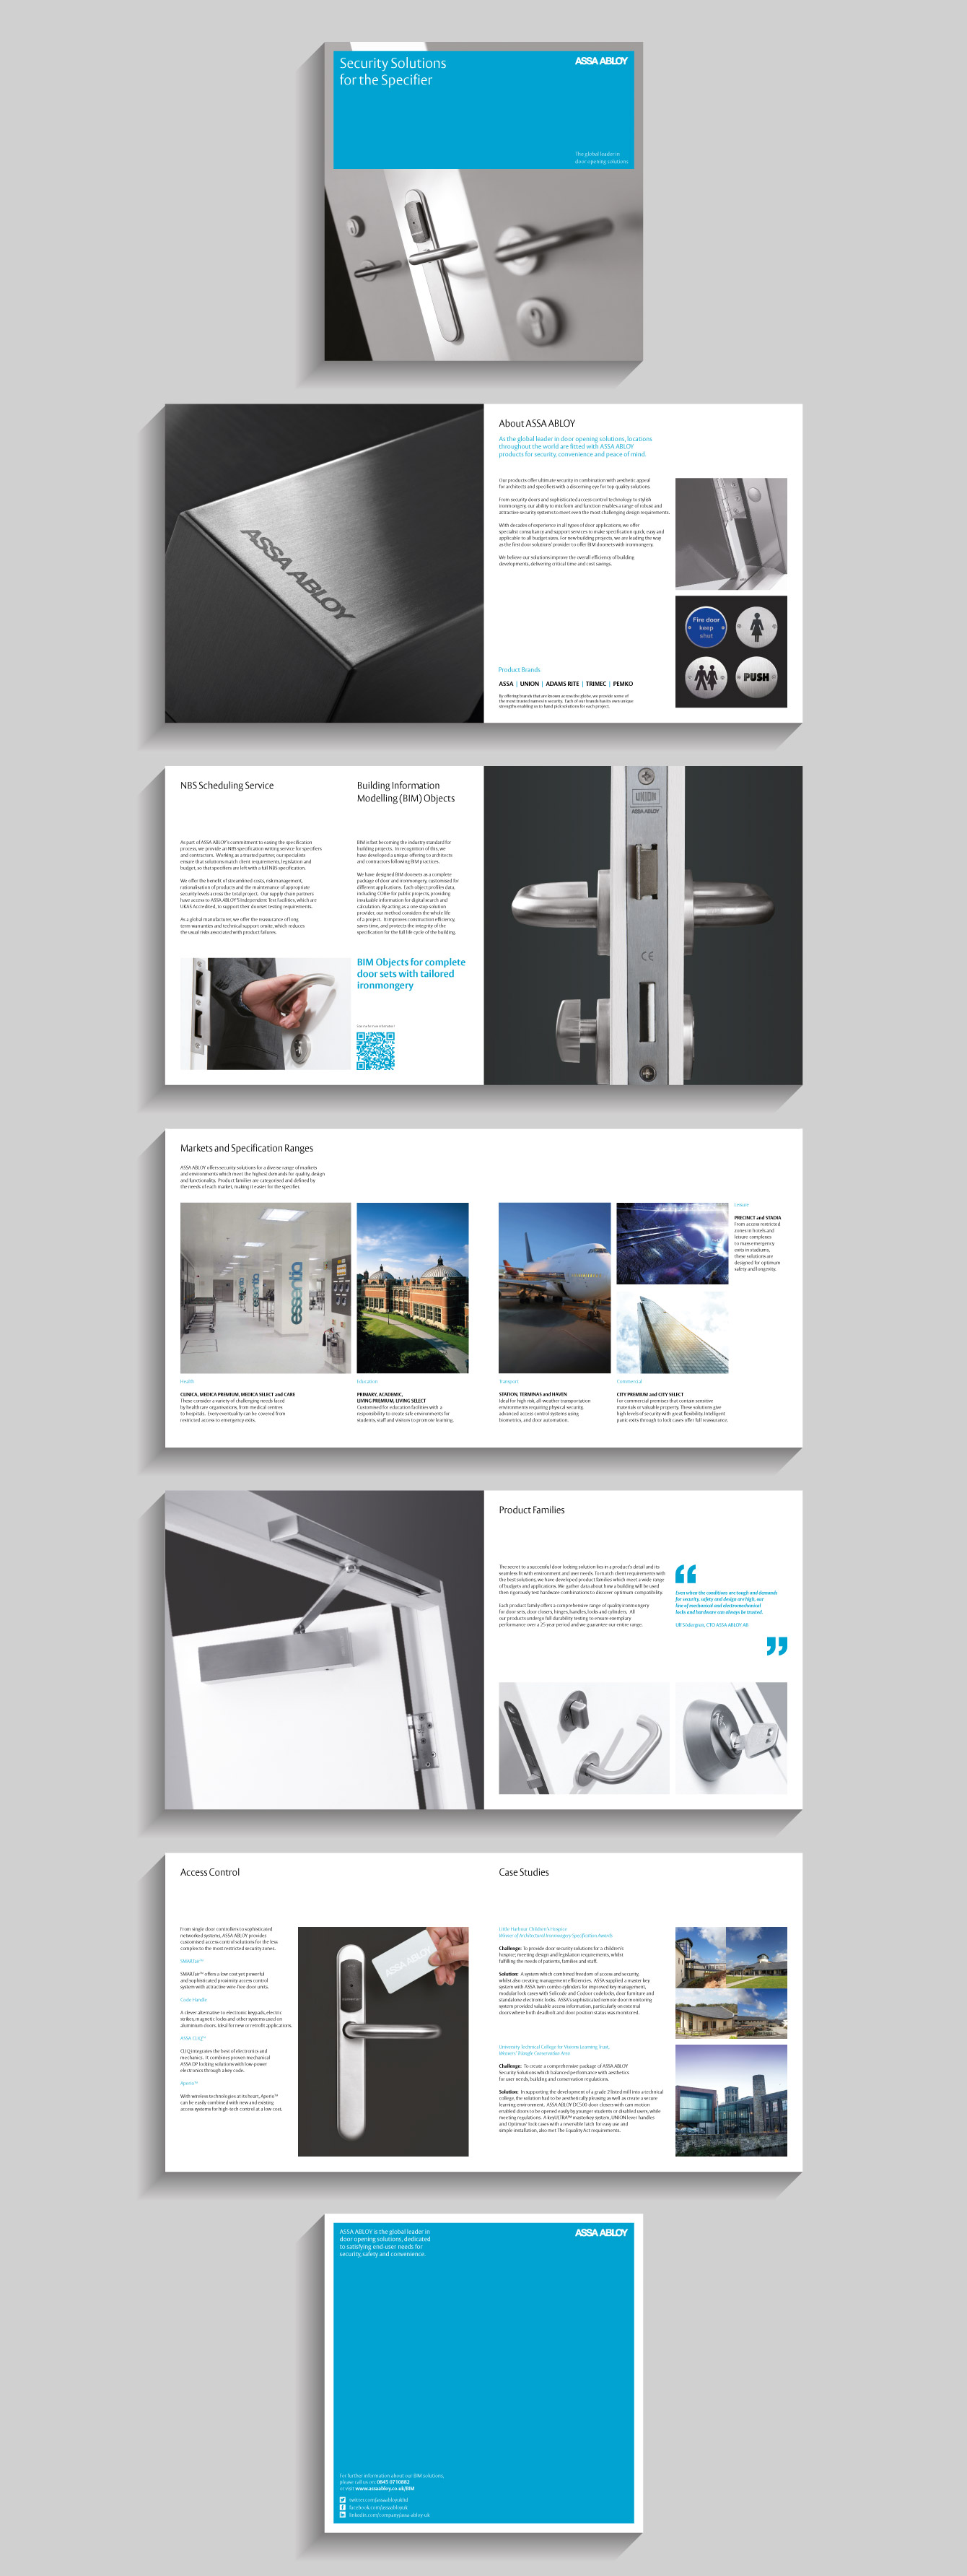 Pages from the ASSA ABLOY brochure - desktop